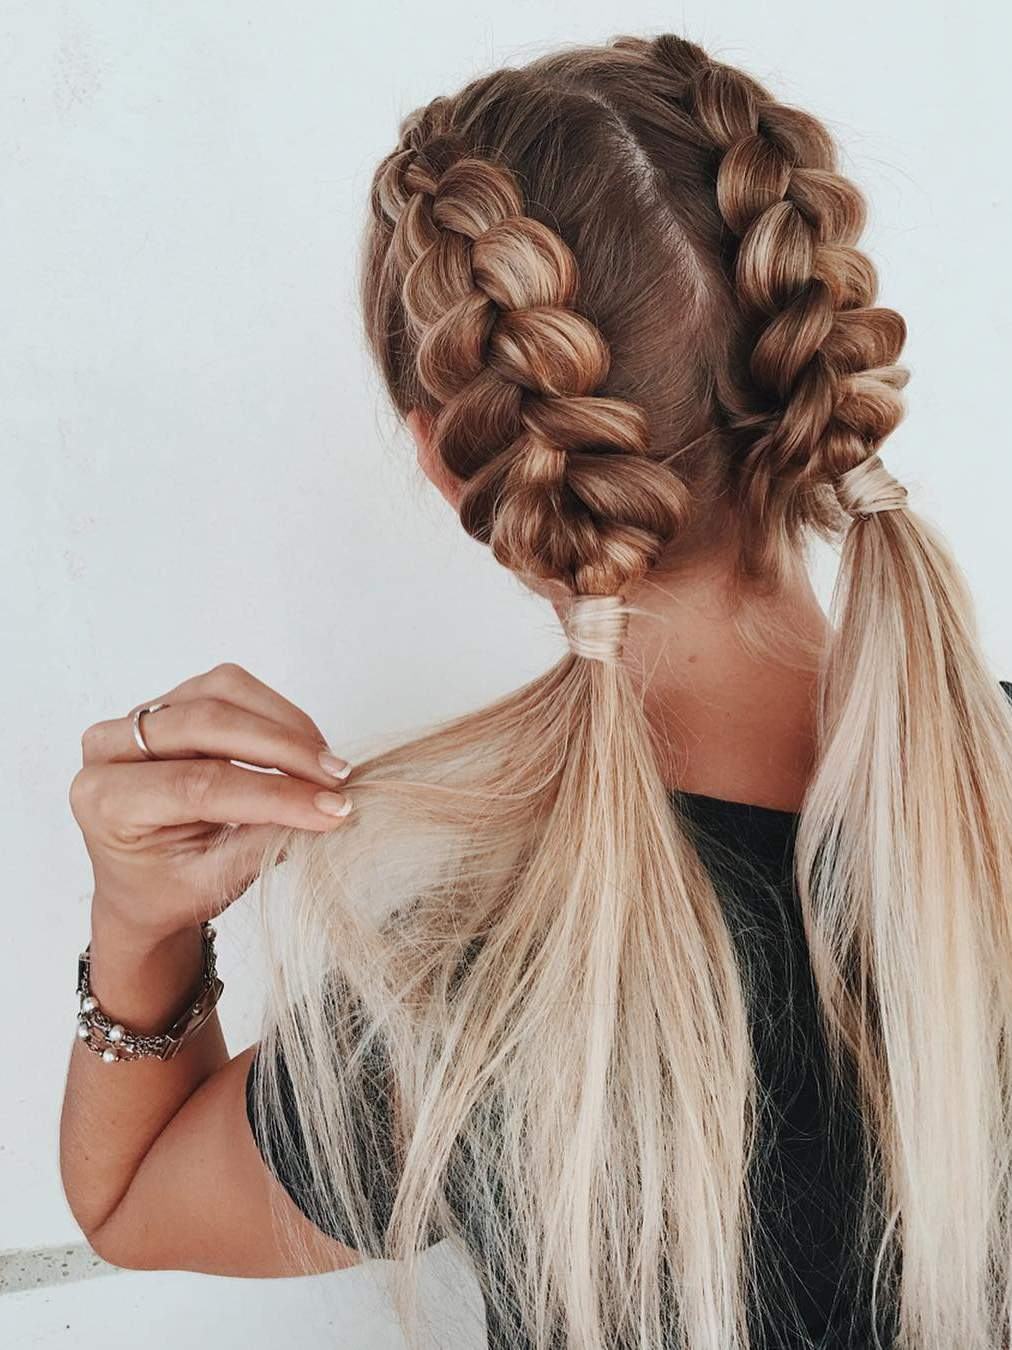 simple braided hair styles 7 braided hairstyles that are loving on 3212